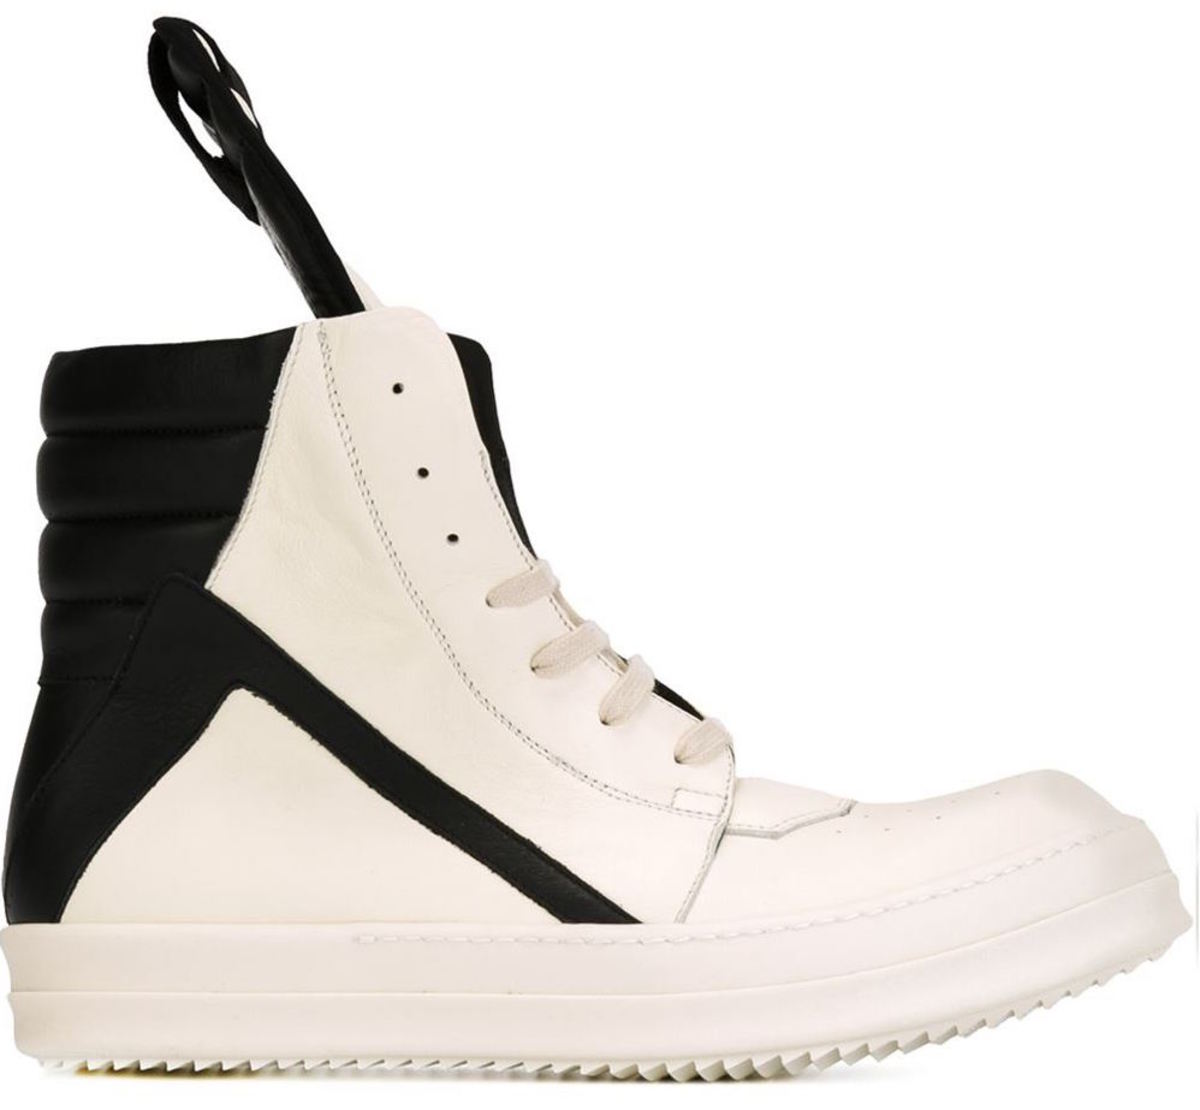 "Rick Owens ""Geobasket"" sneakers, $1144, available at Farfetch."